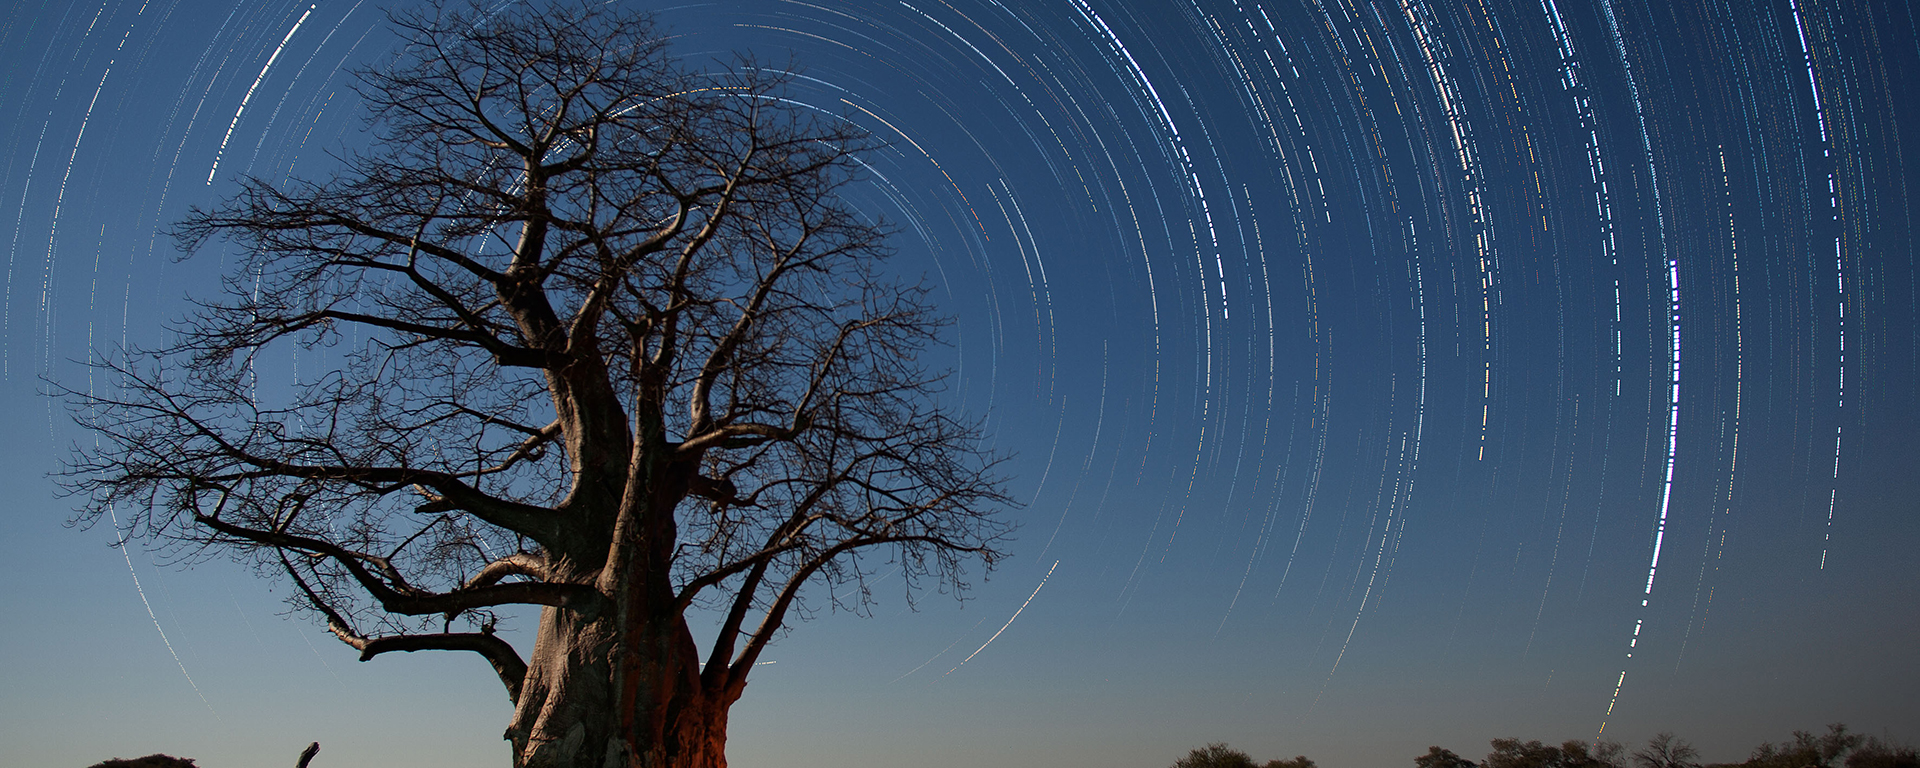 Shooting star trails requires careful planning but the results can be stunning.